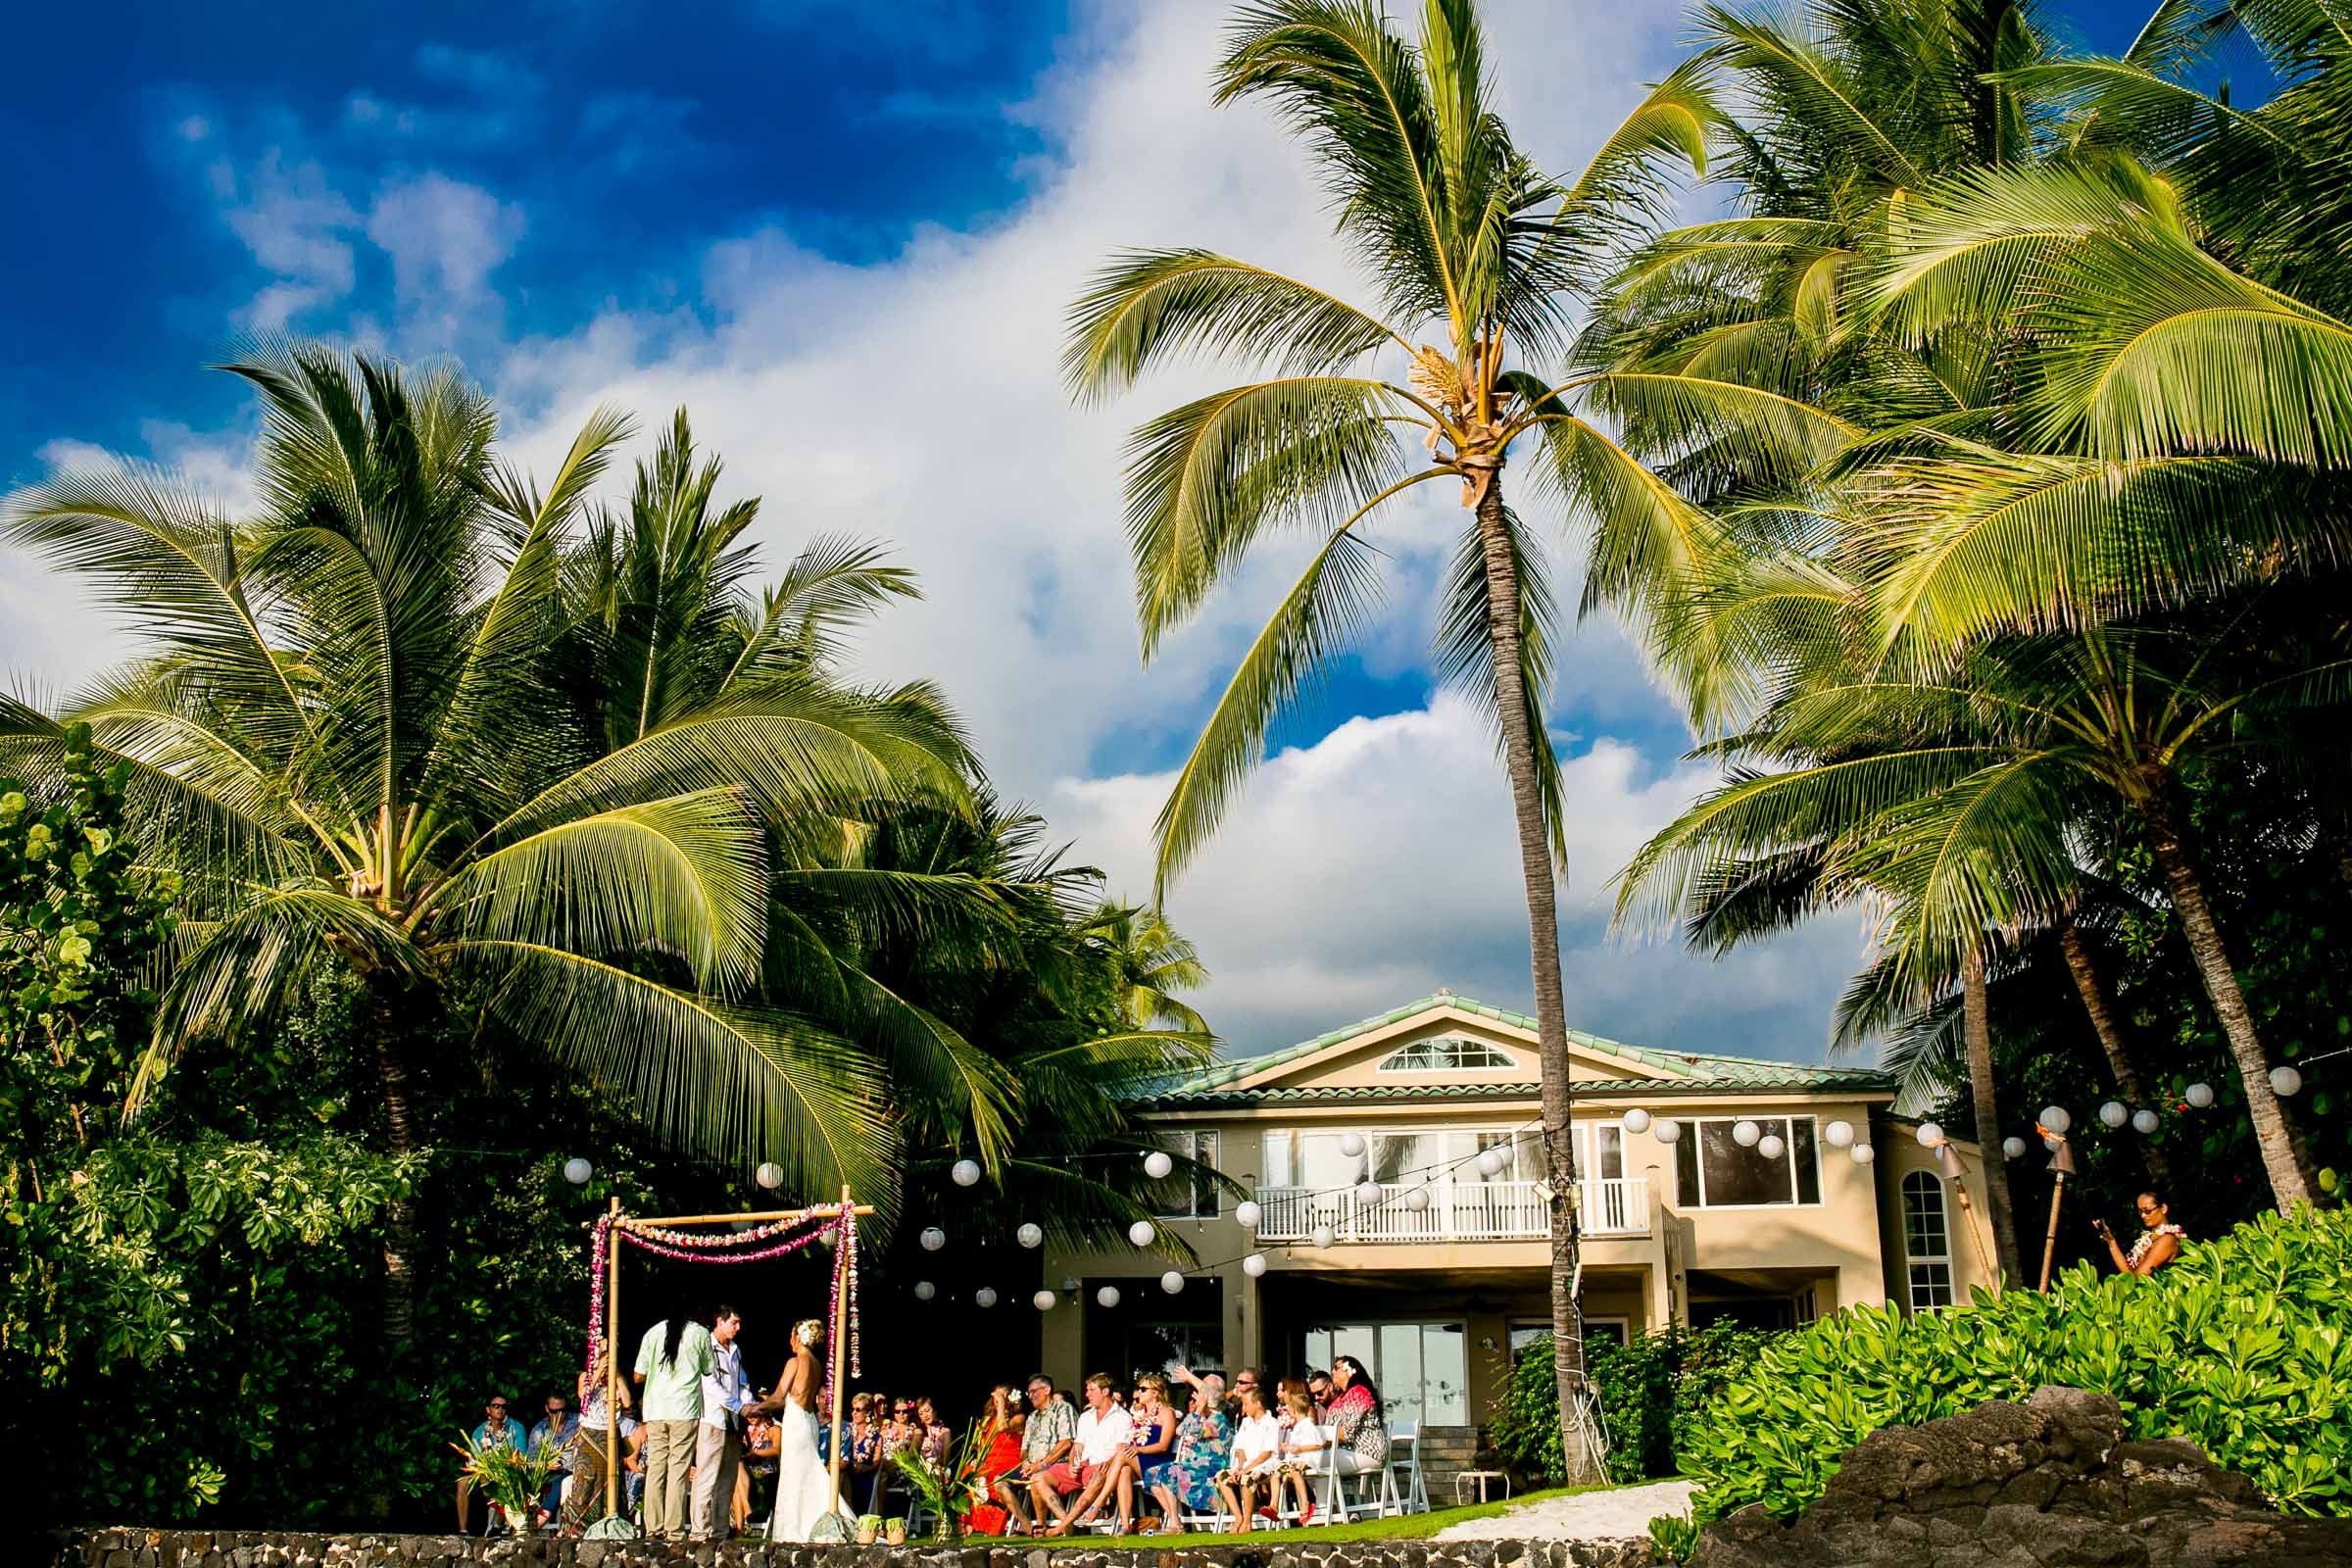 Wide angle perspective of a Kailua Kona Wedding at the Kona Beach Bungalows on the Big Island of Hawaii